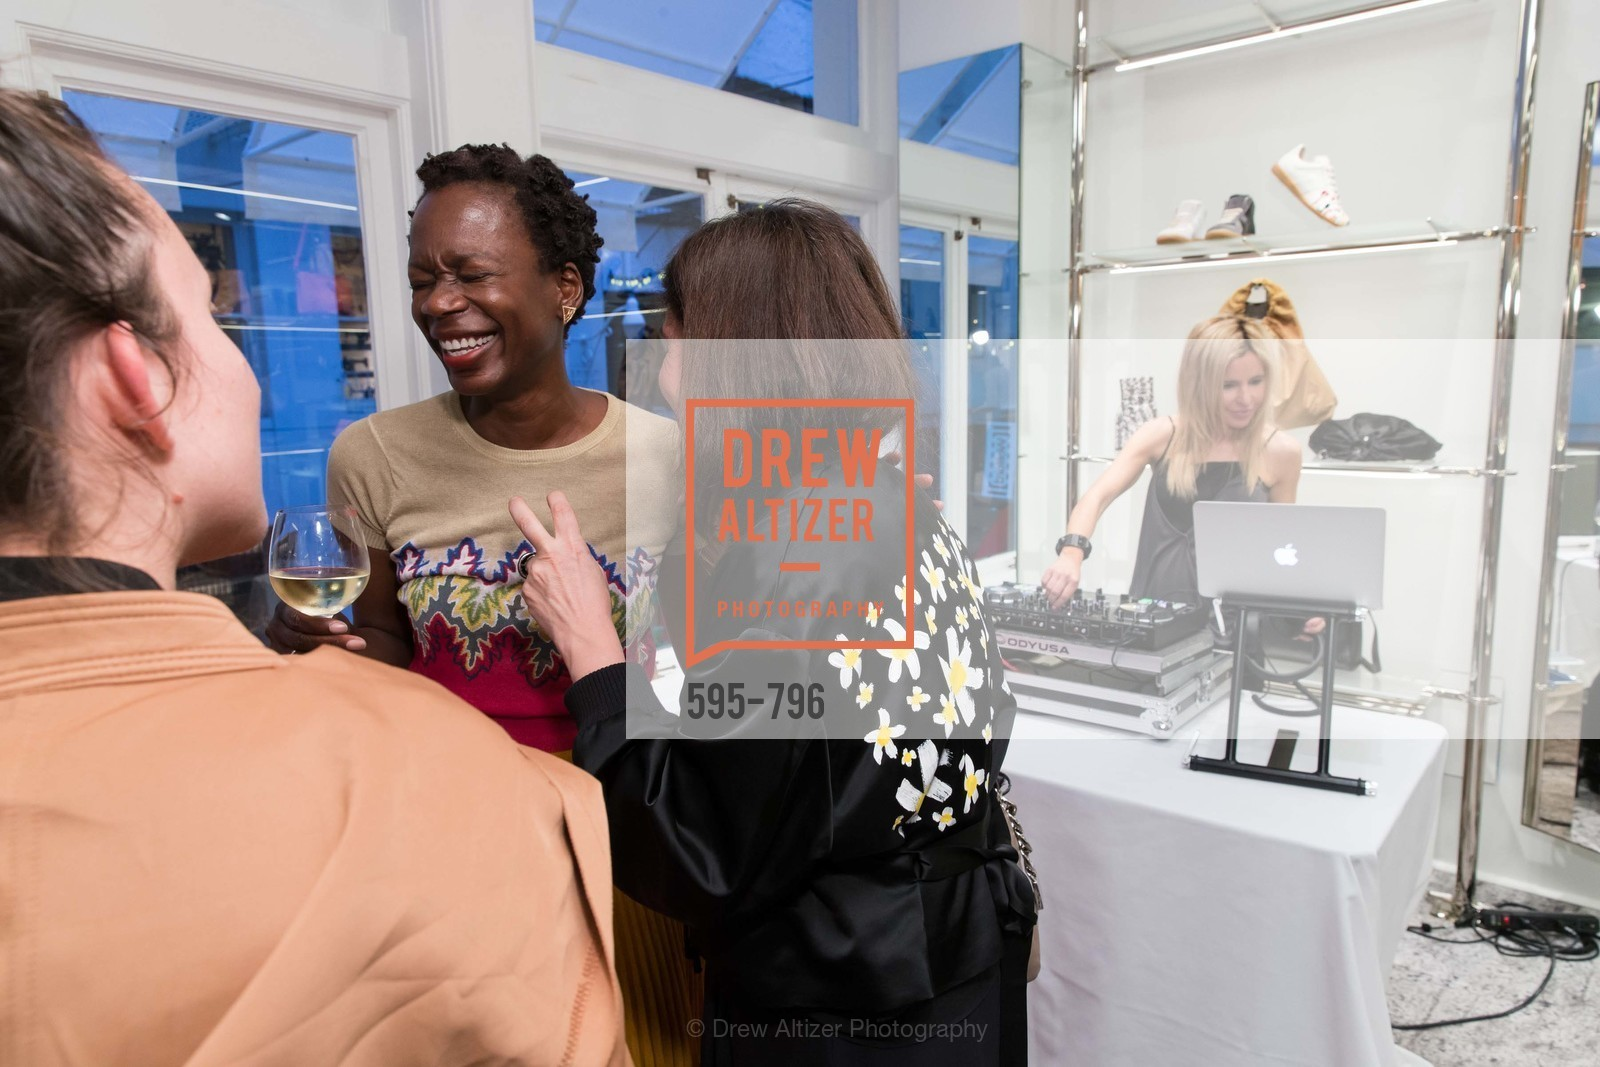 Lola Oladunjoye, Laura Giulini, Lana Adair, MAISON MARGIELA San Francisco Boutique Grand Opening Event, US, April 23rd, 2015,Drew Altizer, Drew Altizer Photography, full-service agency, private events, San Francisco photographer, photographer california